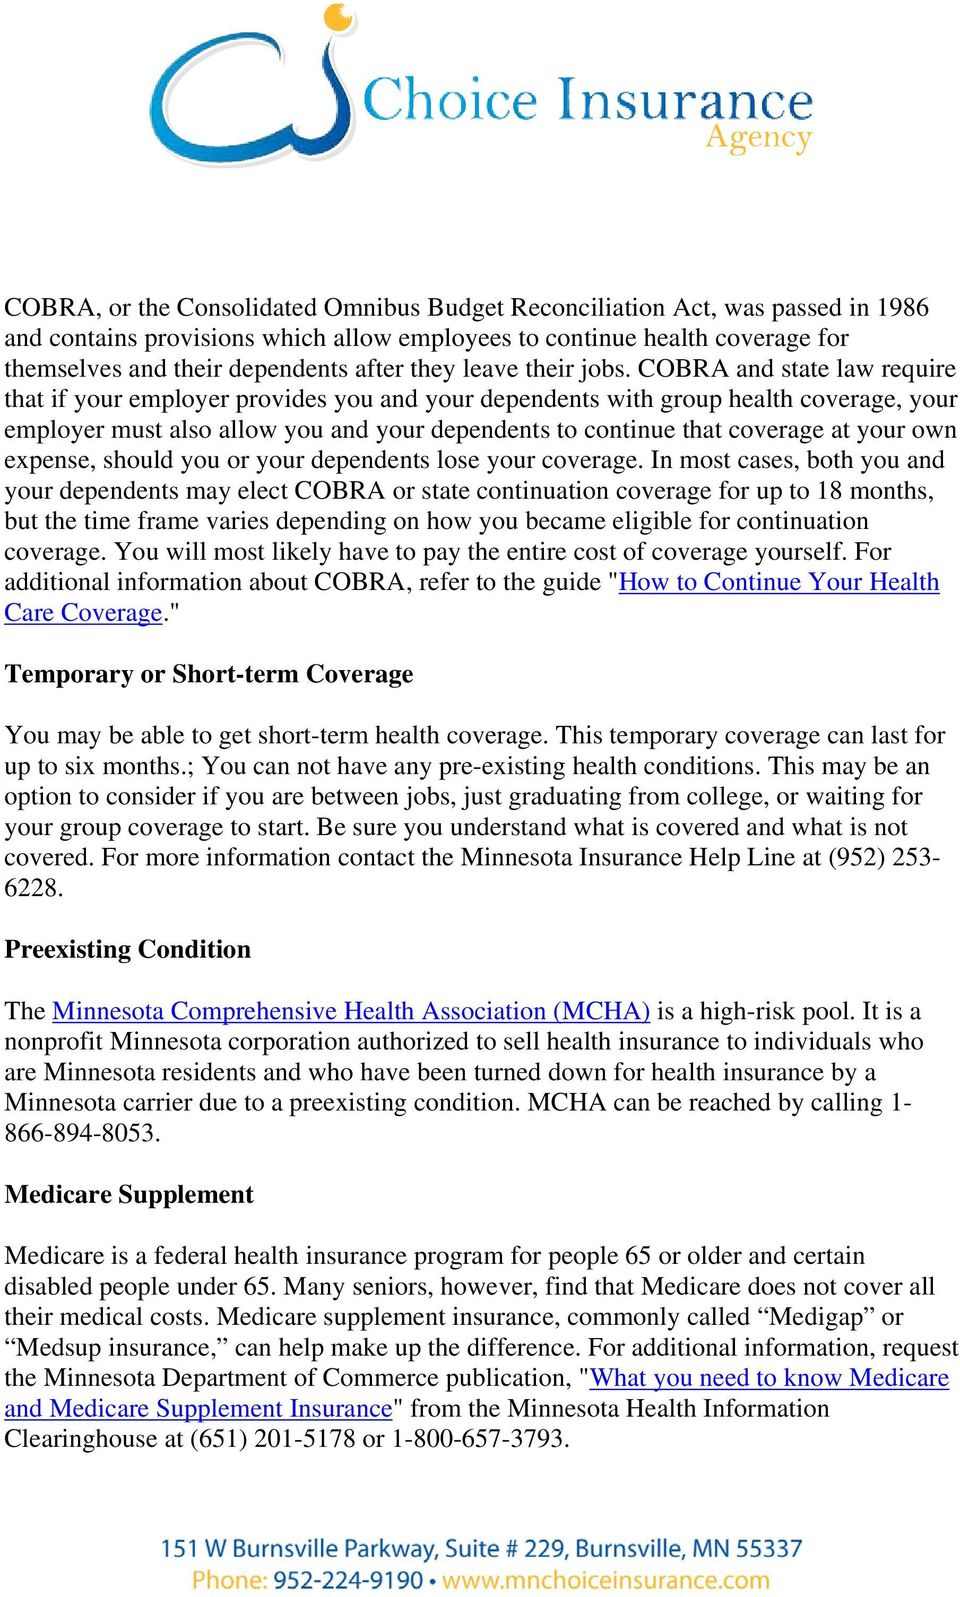 COBRA and state law require that if your employer provides you and your dependents with group health coverage, your employer must also allow you and your dependents to continue that coverage at your